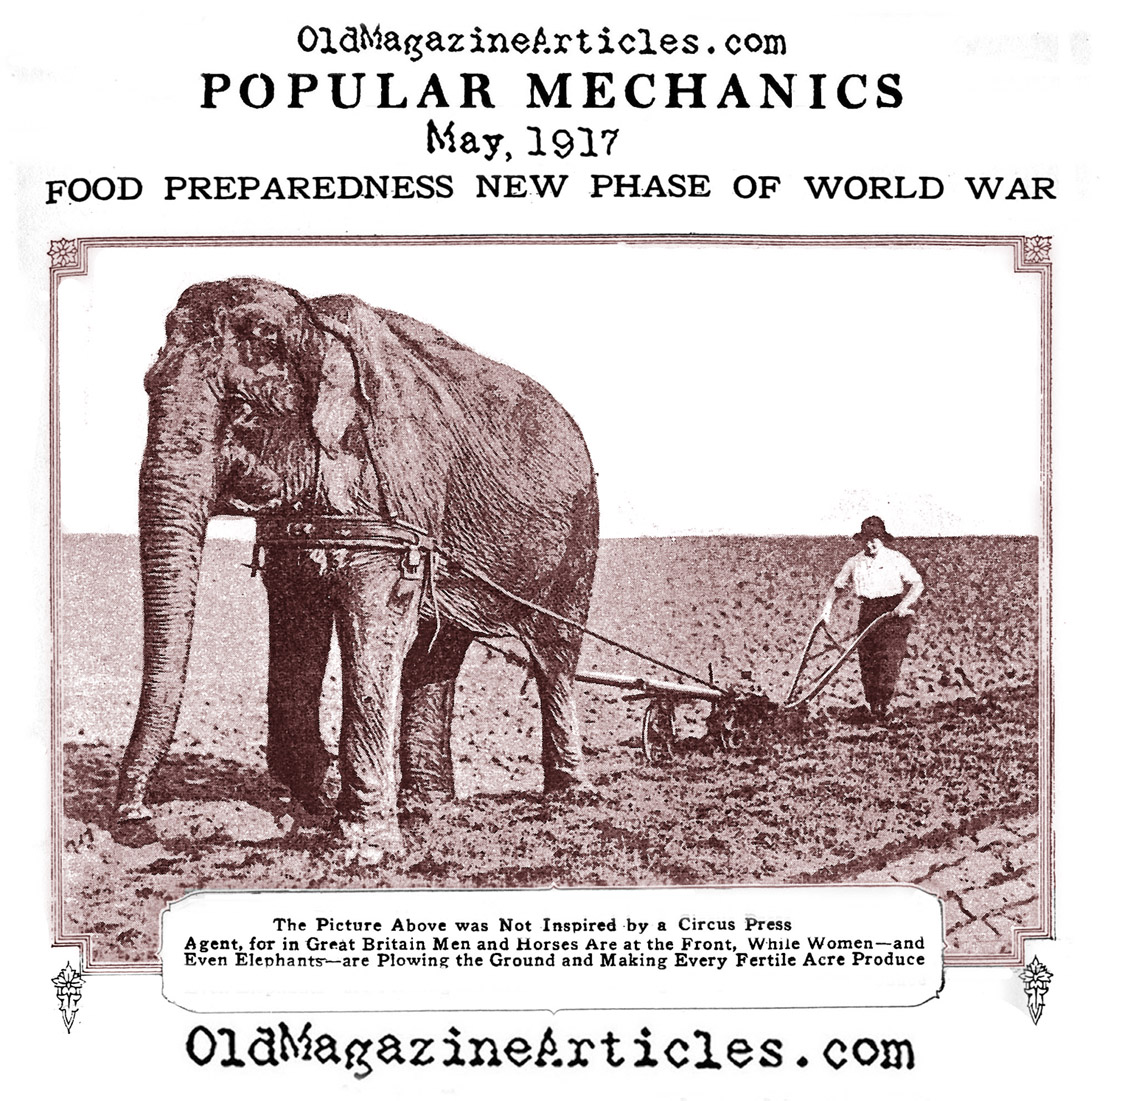 The Elephant on the British Home  Front (Popular Mechanics, 1917)